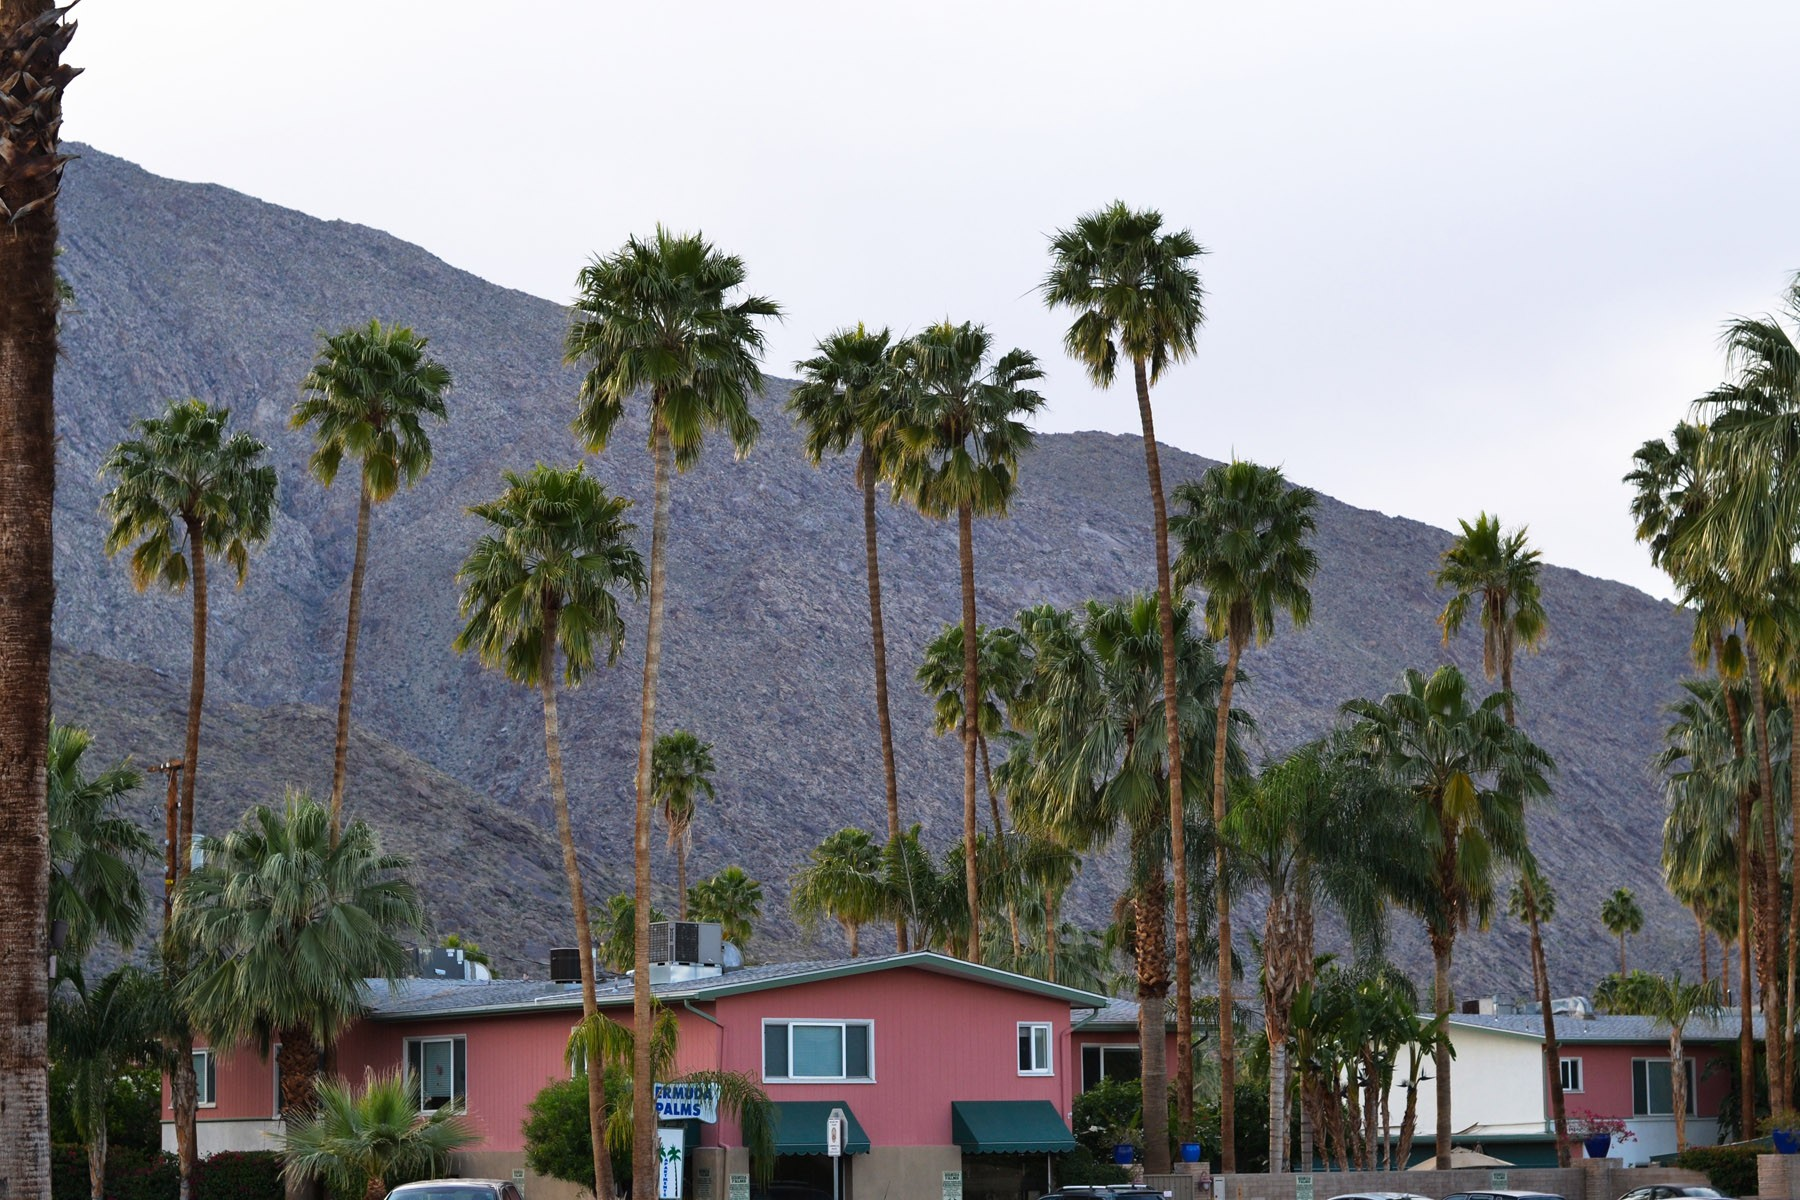 The Coachella Valley grows more than just palm trees.